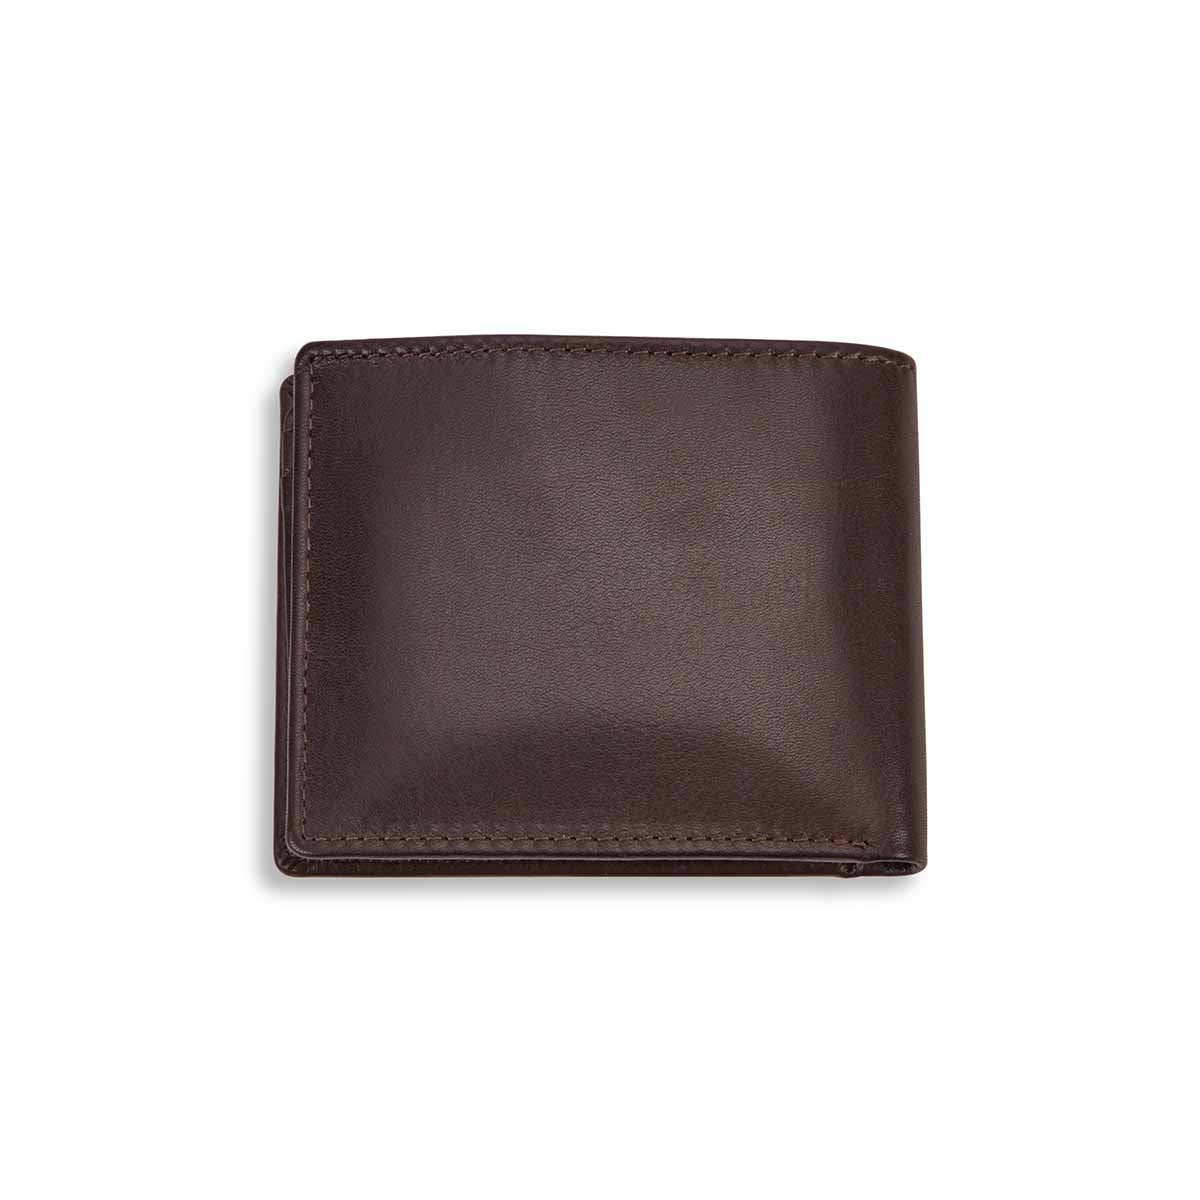 Mns left wing brown RFID secure wallet